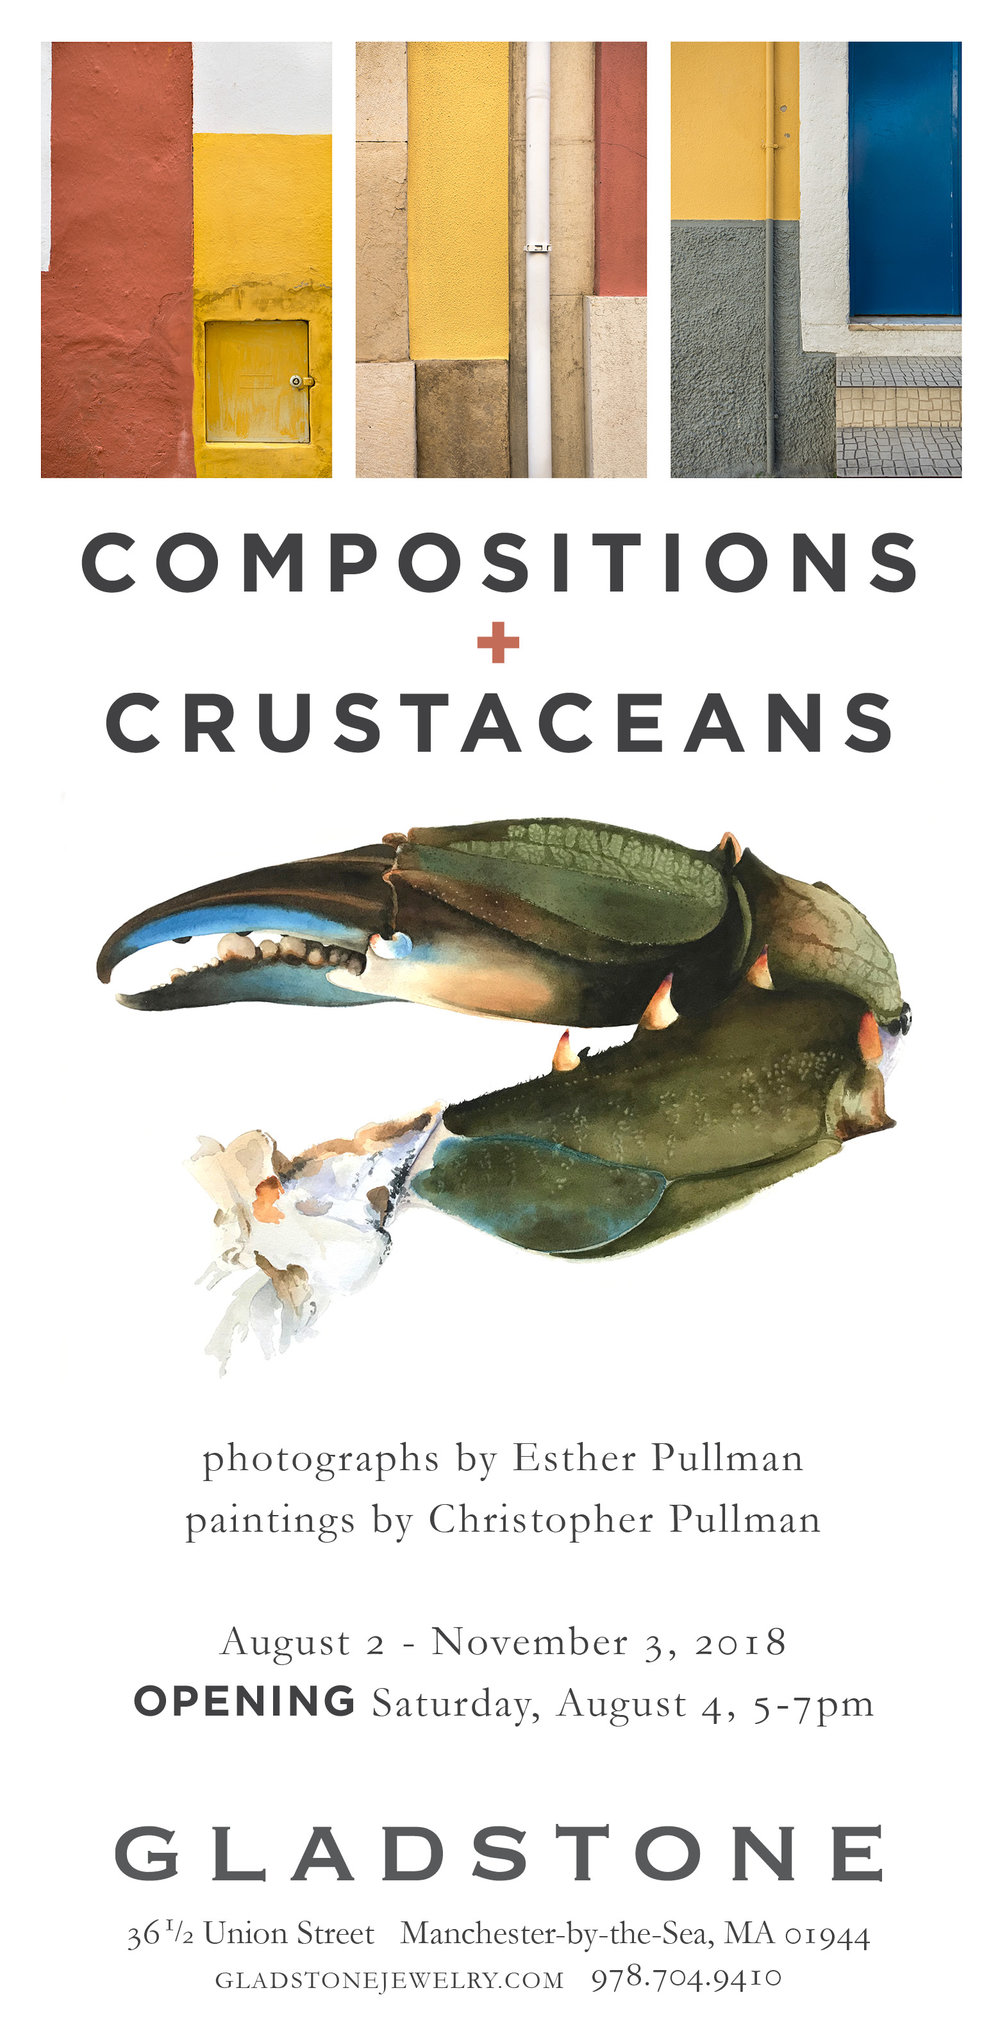 COMPOSITIONS AND CRUSTACEANS FINAL.jpg